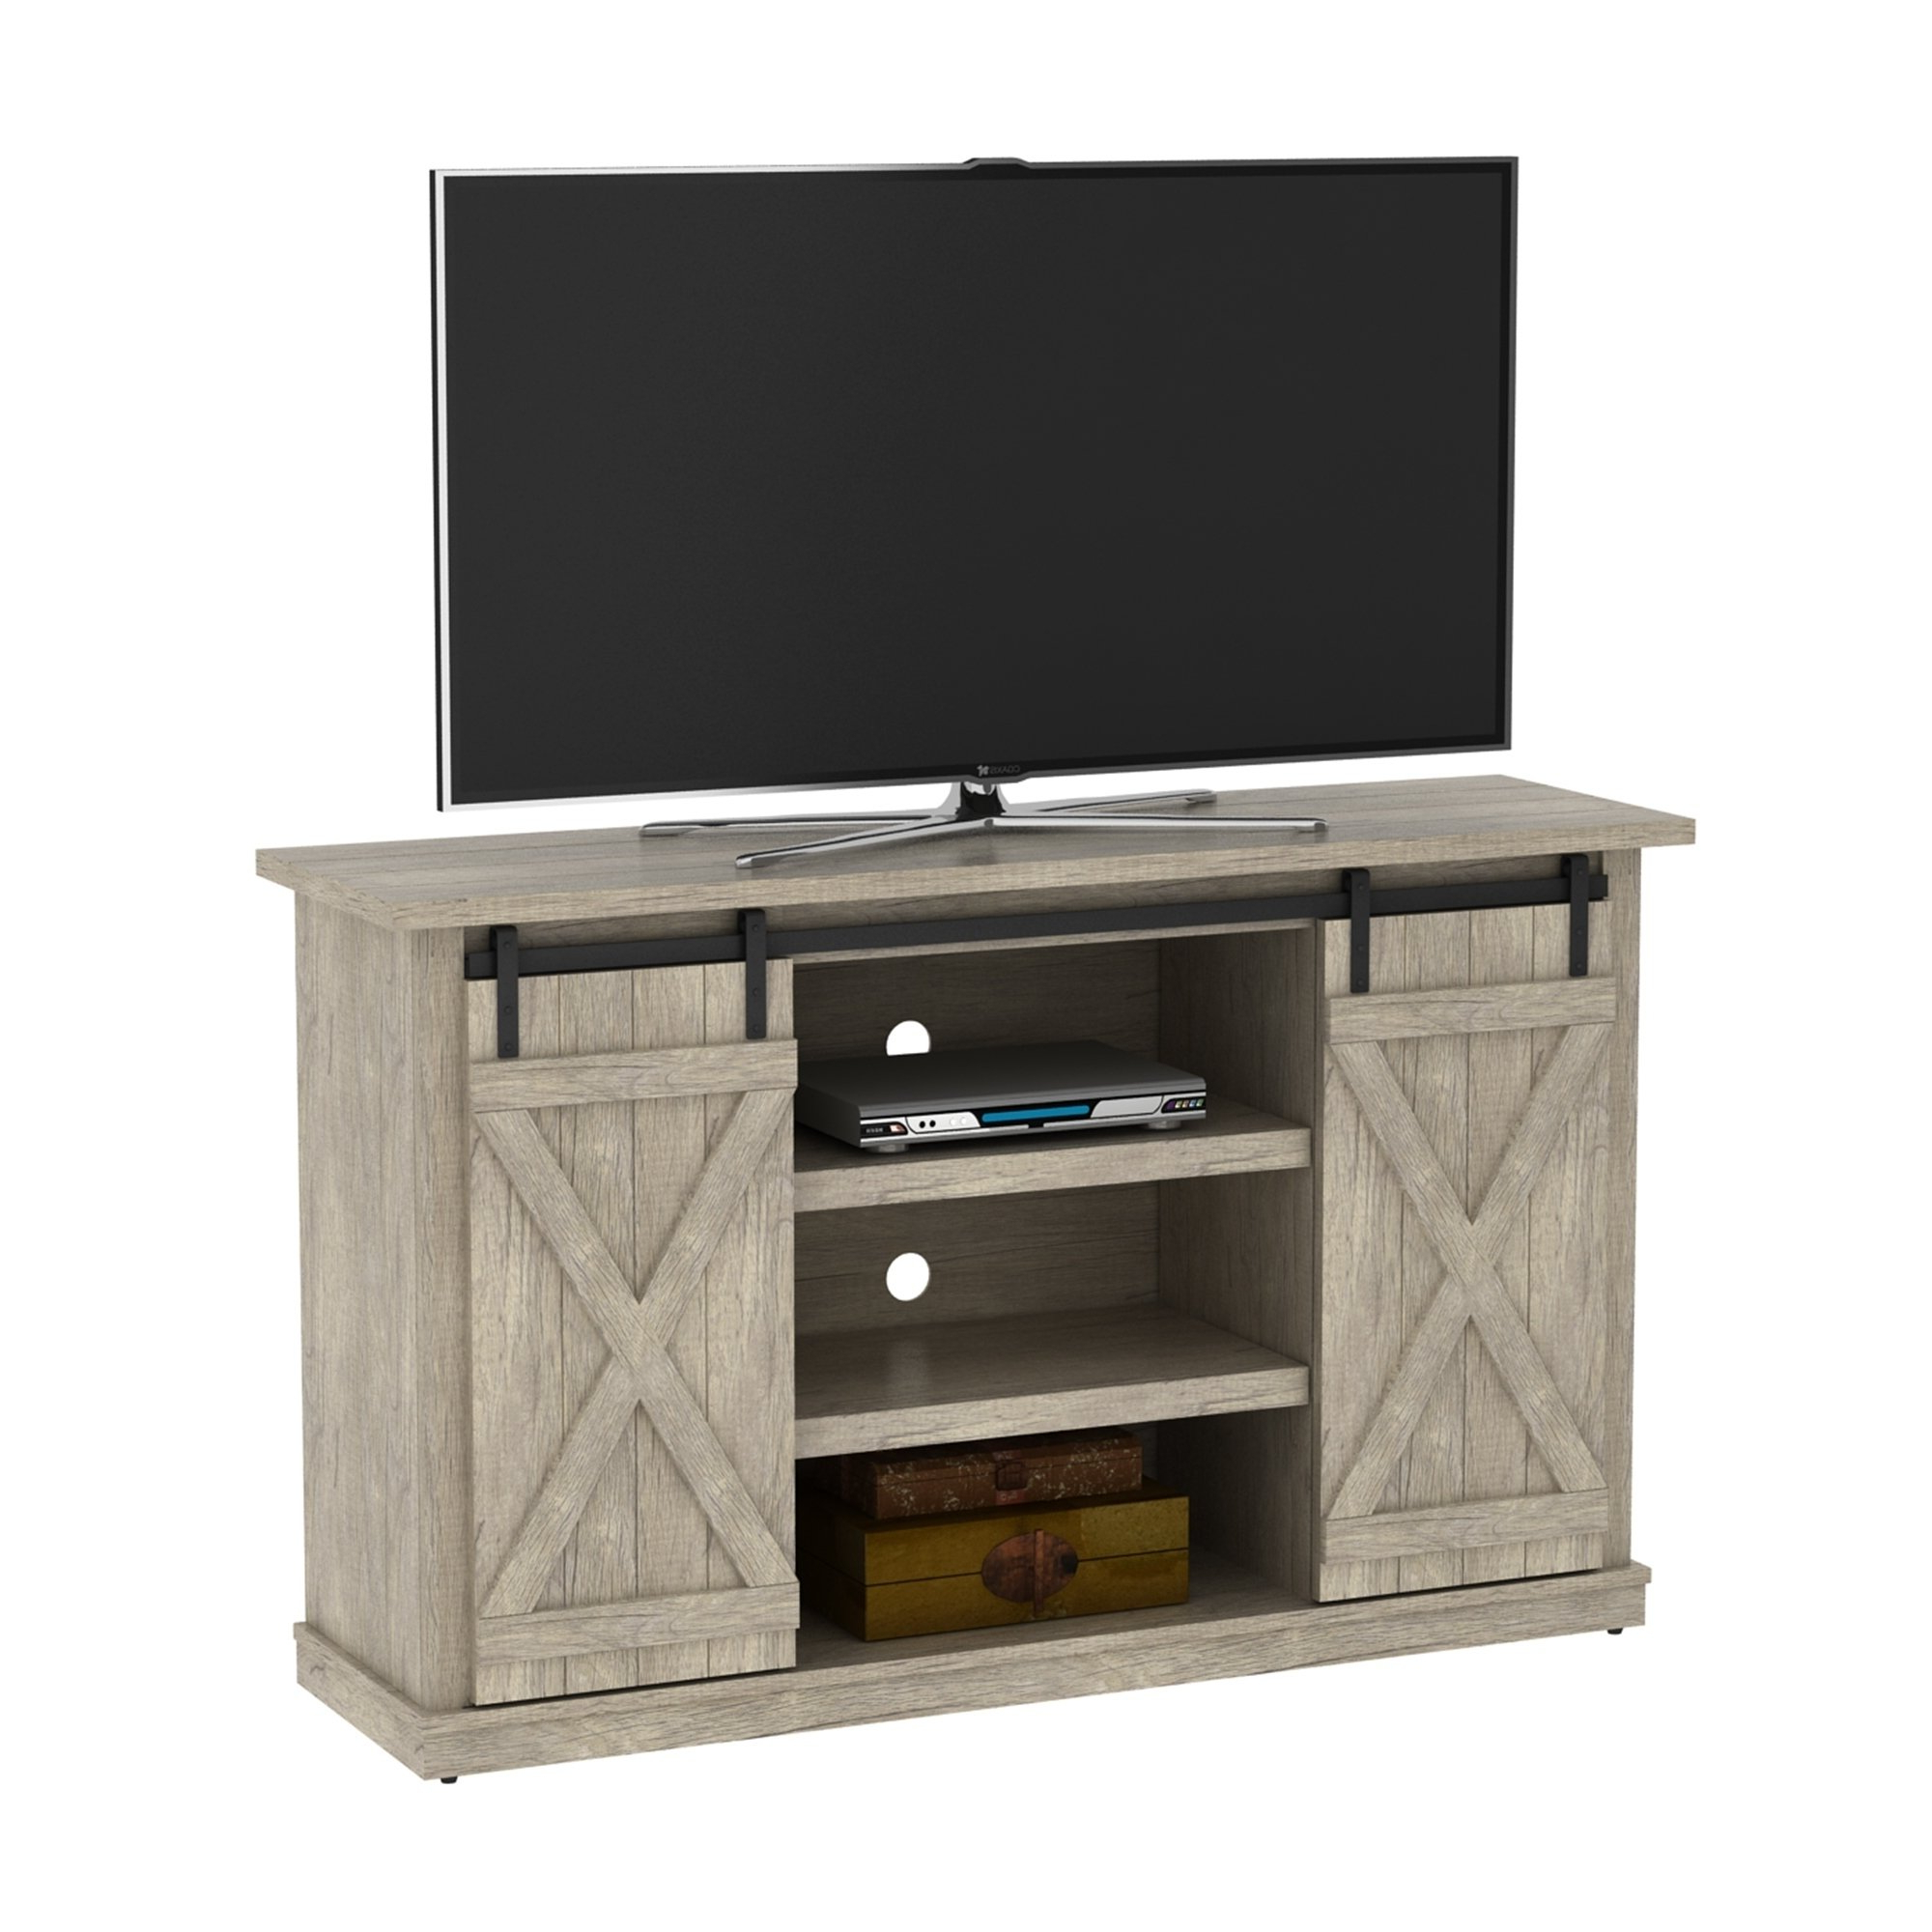 Pine Tv Stands Regarding Trendy Shop Cottonwood Tv Stand For Tvs Up To 60 Inches, Ashland Pine (Gallery 16 of 20)